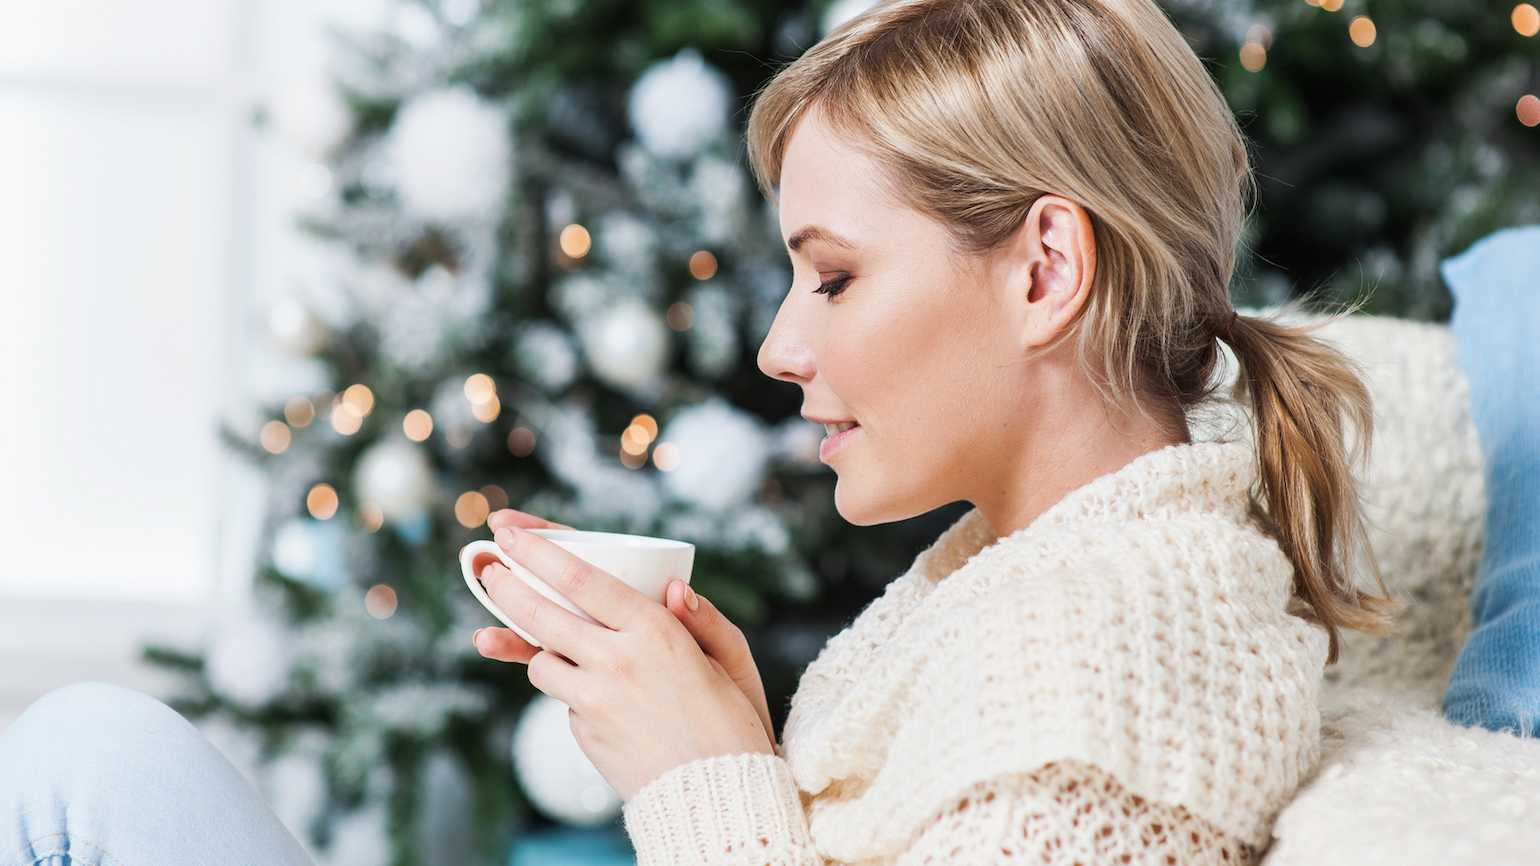 How to slow down during the holiday season